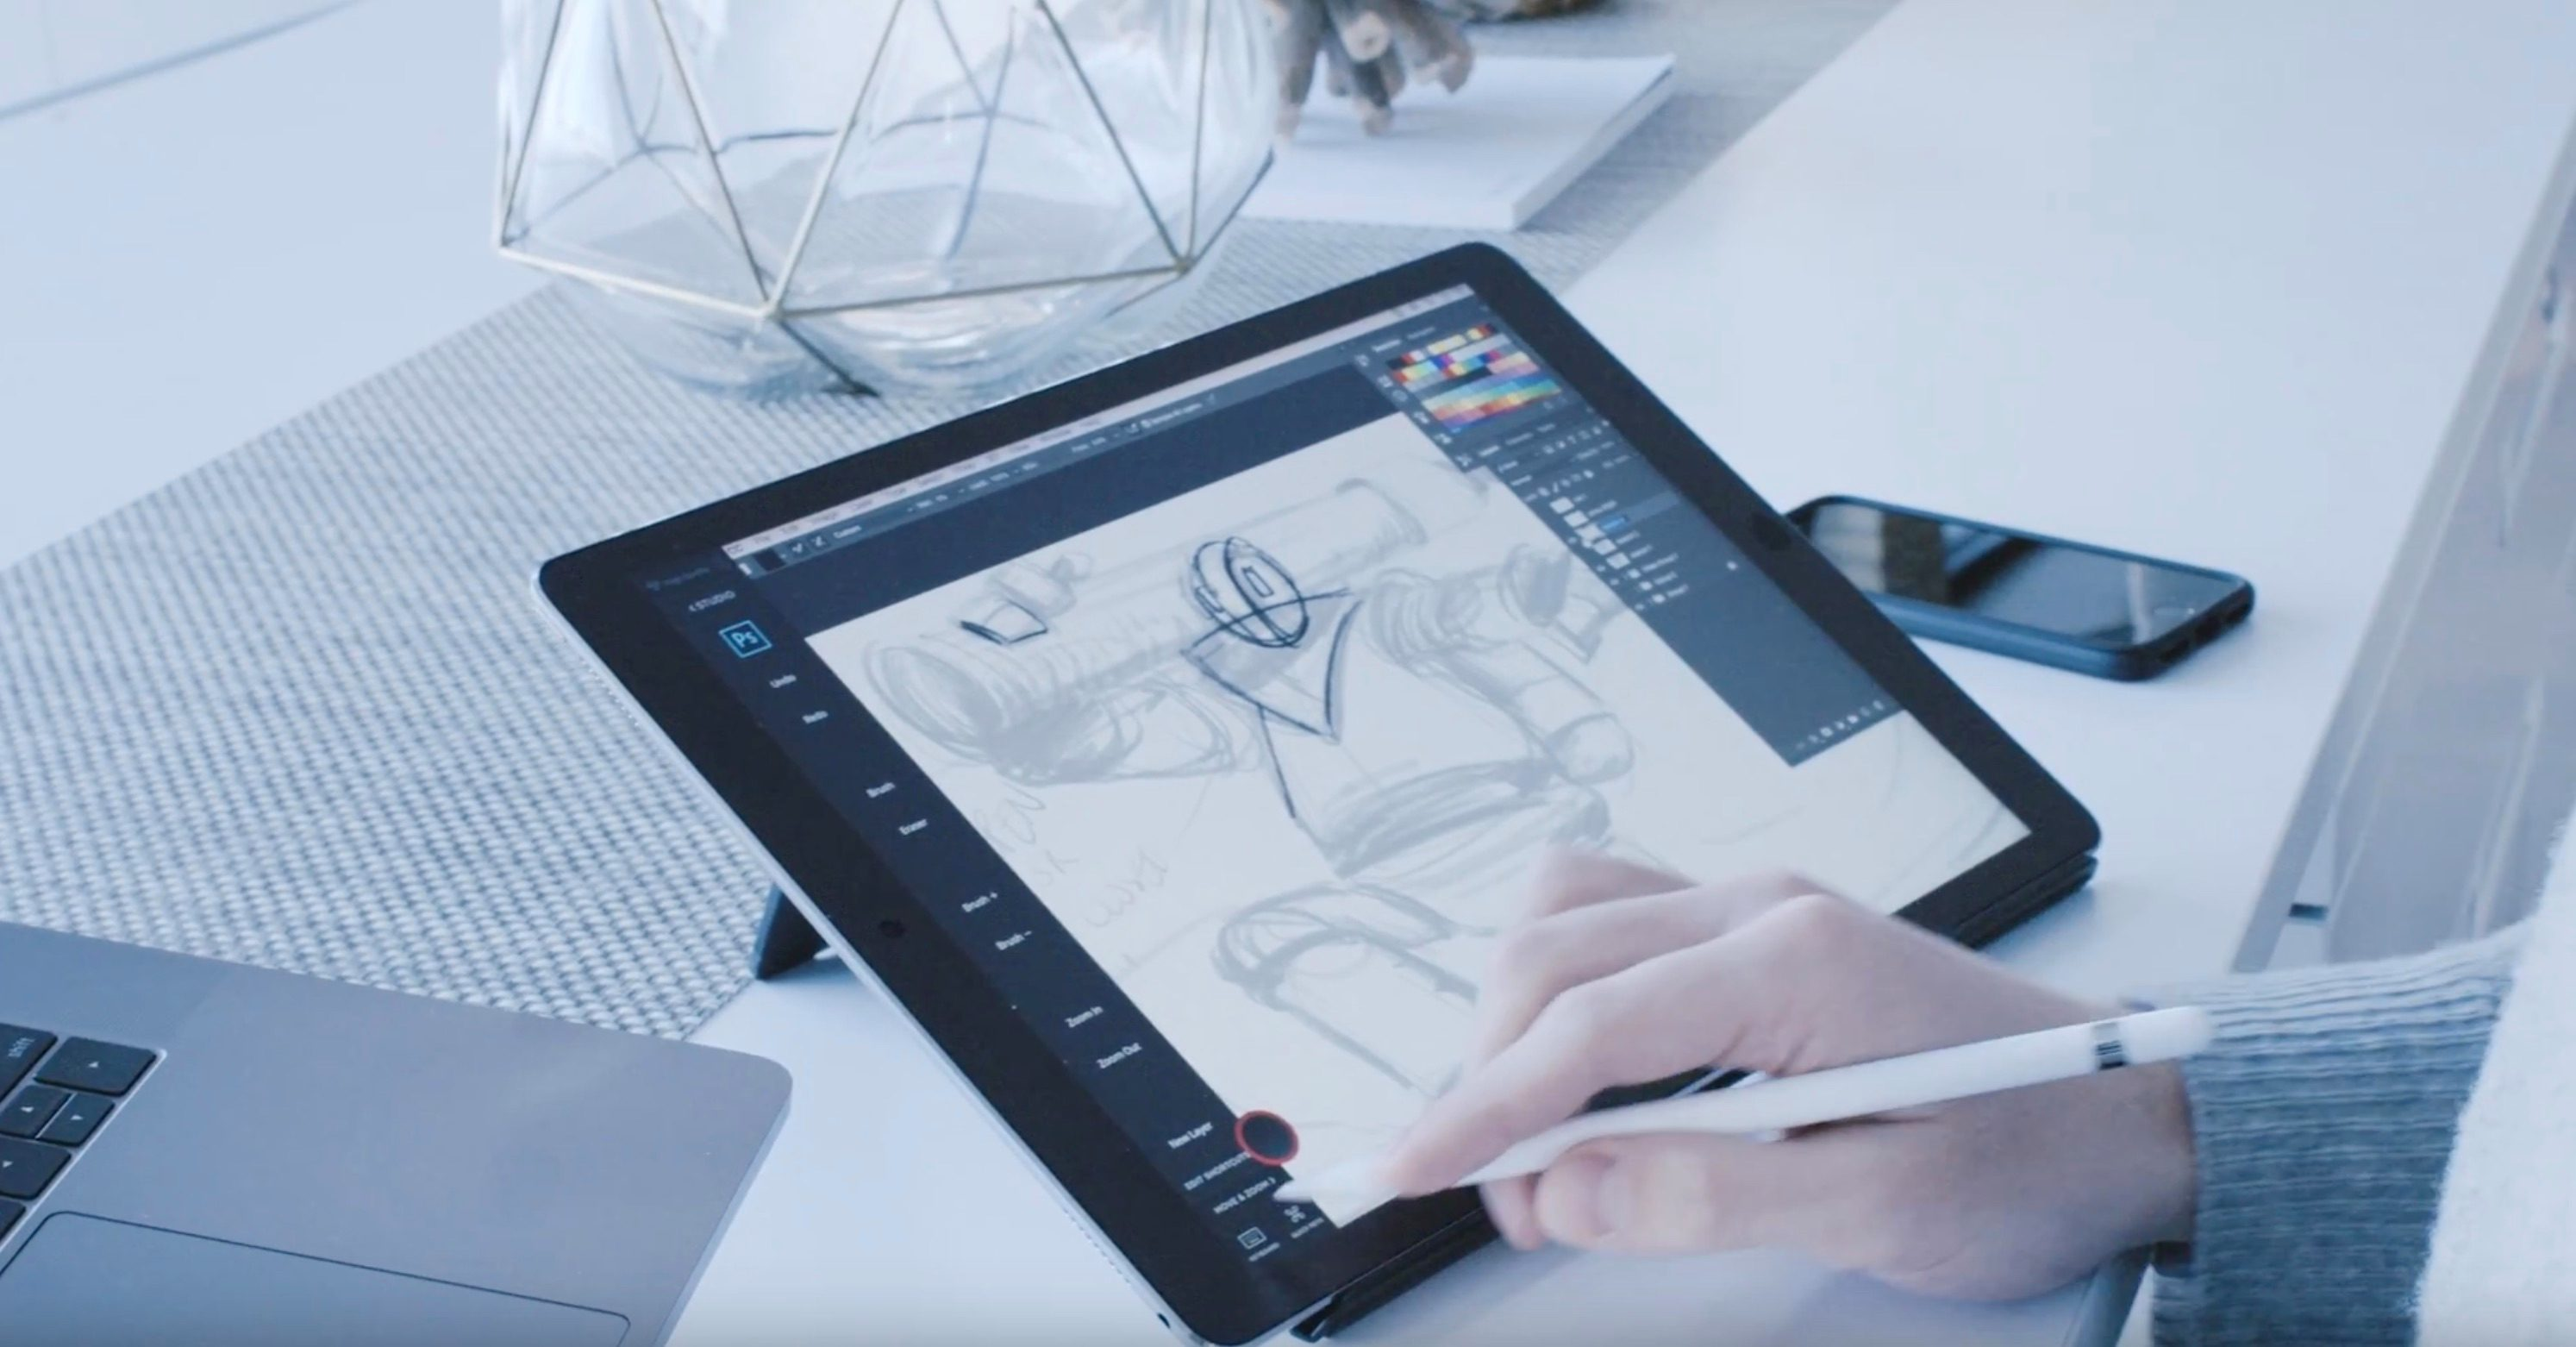 Tech okay the best ios apps for drawing with apple pencil ipad pro astro offers a span of applications for ipad pro malvernweather Choice Image